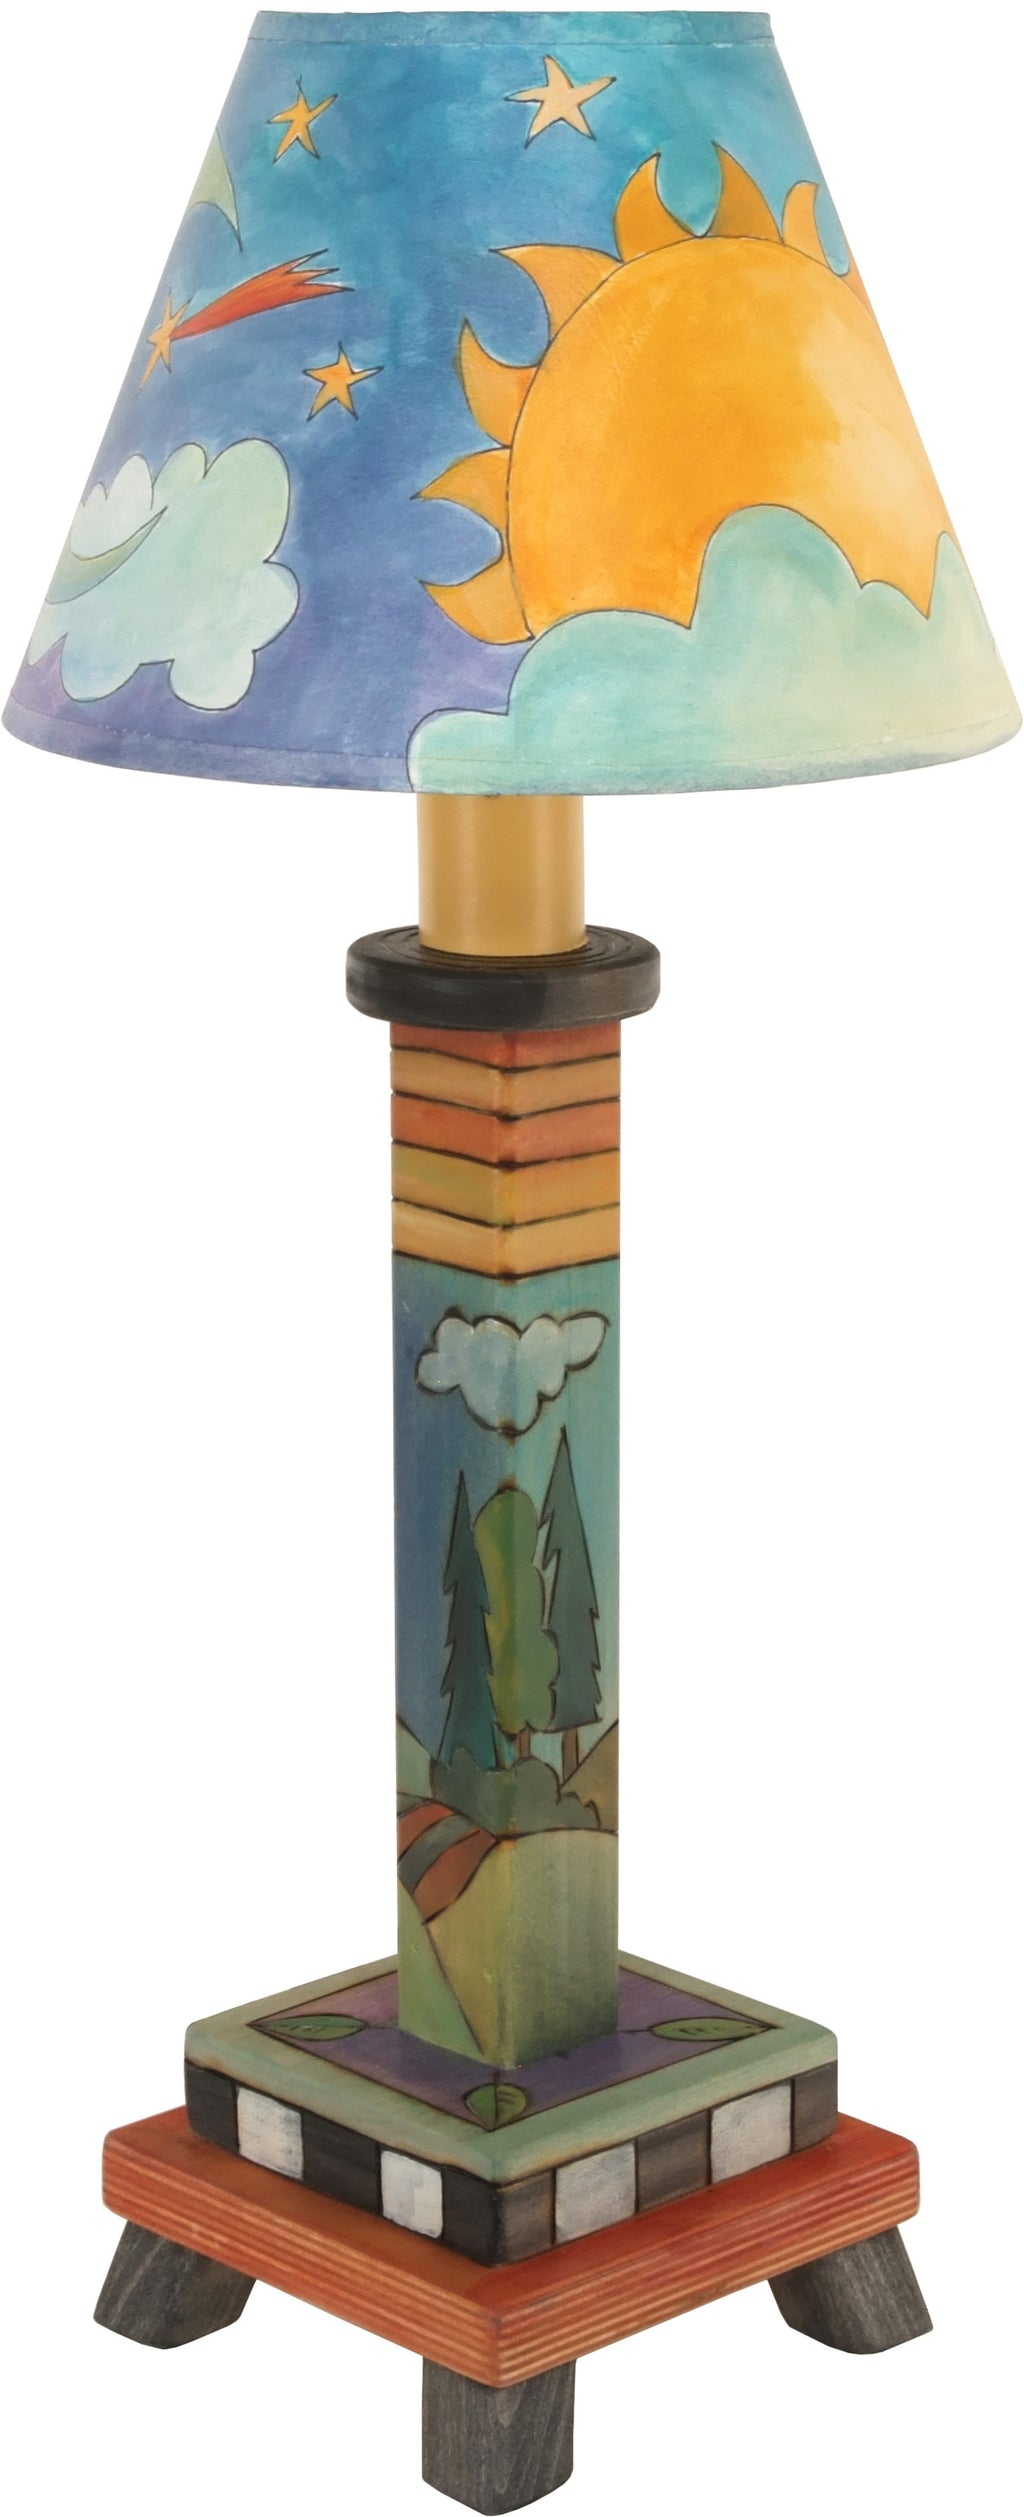 Milled Candlestick Lamp –  The cute landscape base and sky shade design on this lamp makes it perfect for a nightstand